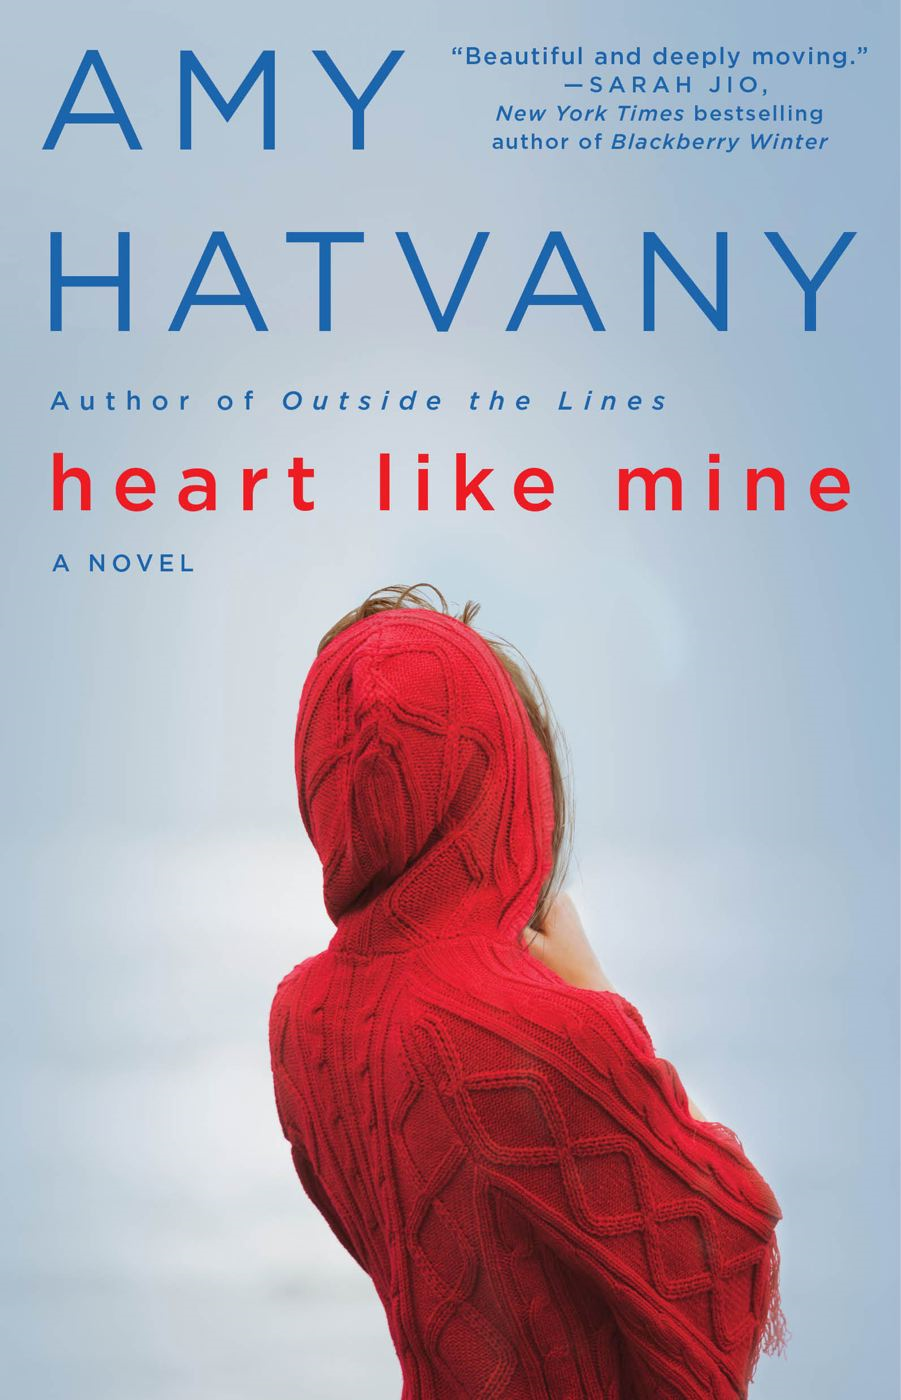 Heart Like Mine By: Amy Hatvany